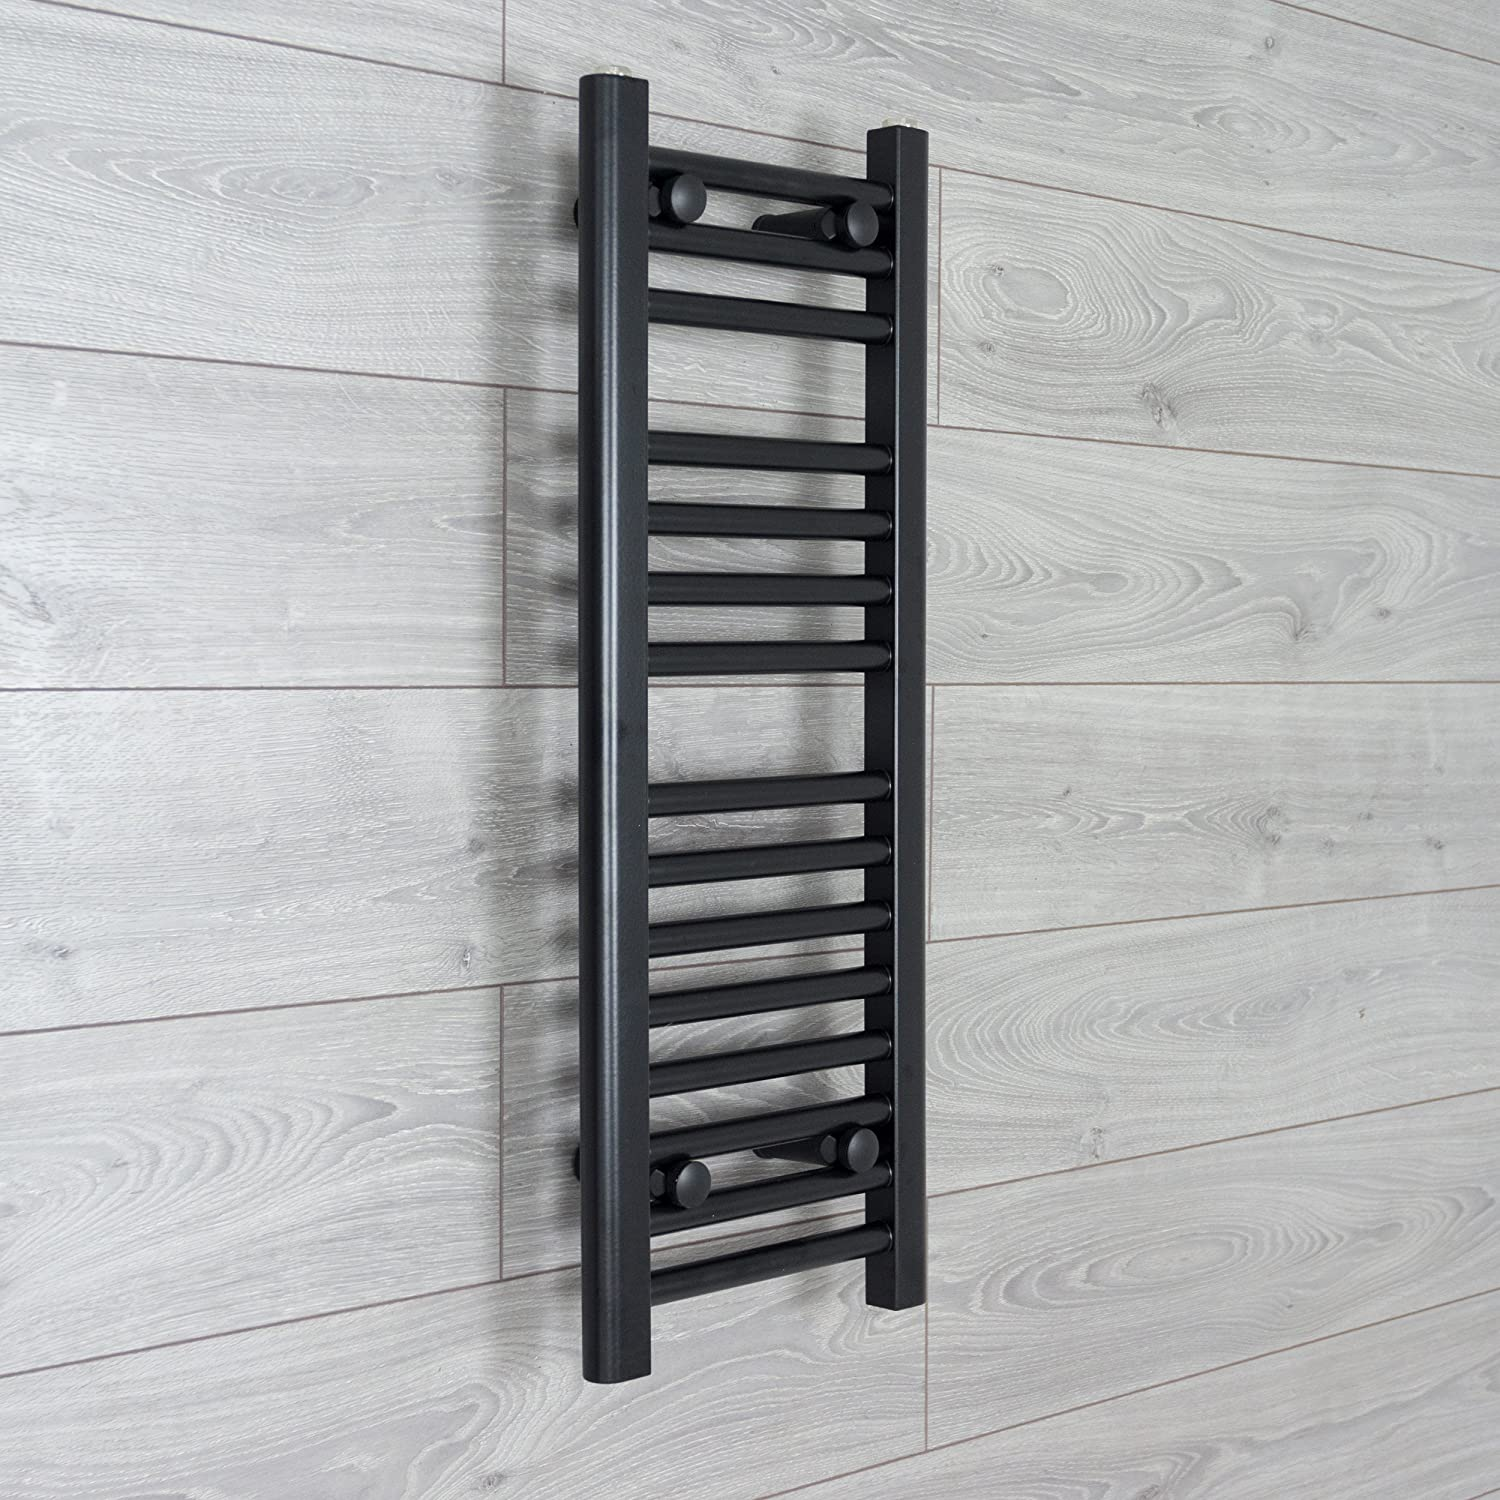 300mm Wide Black Heated Towel Rail Radiator Flat Ladder for Stylish Bathroom (800mm High) CBRAD